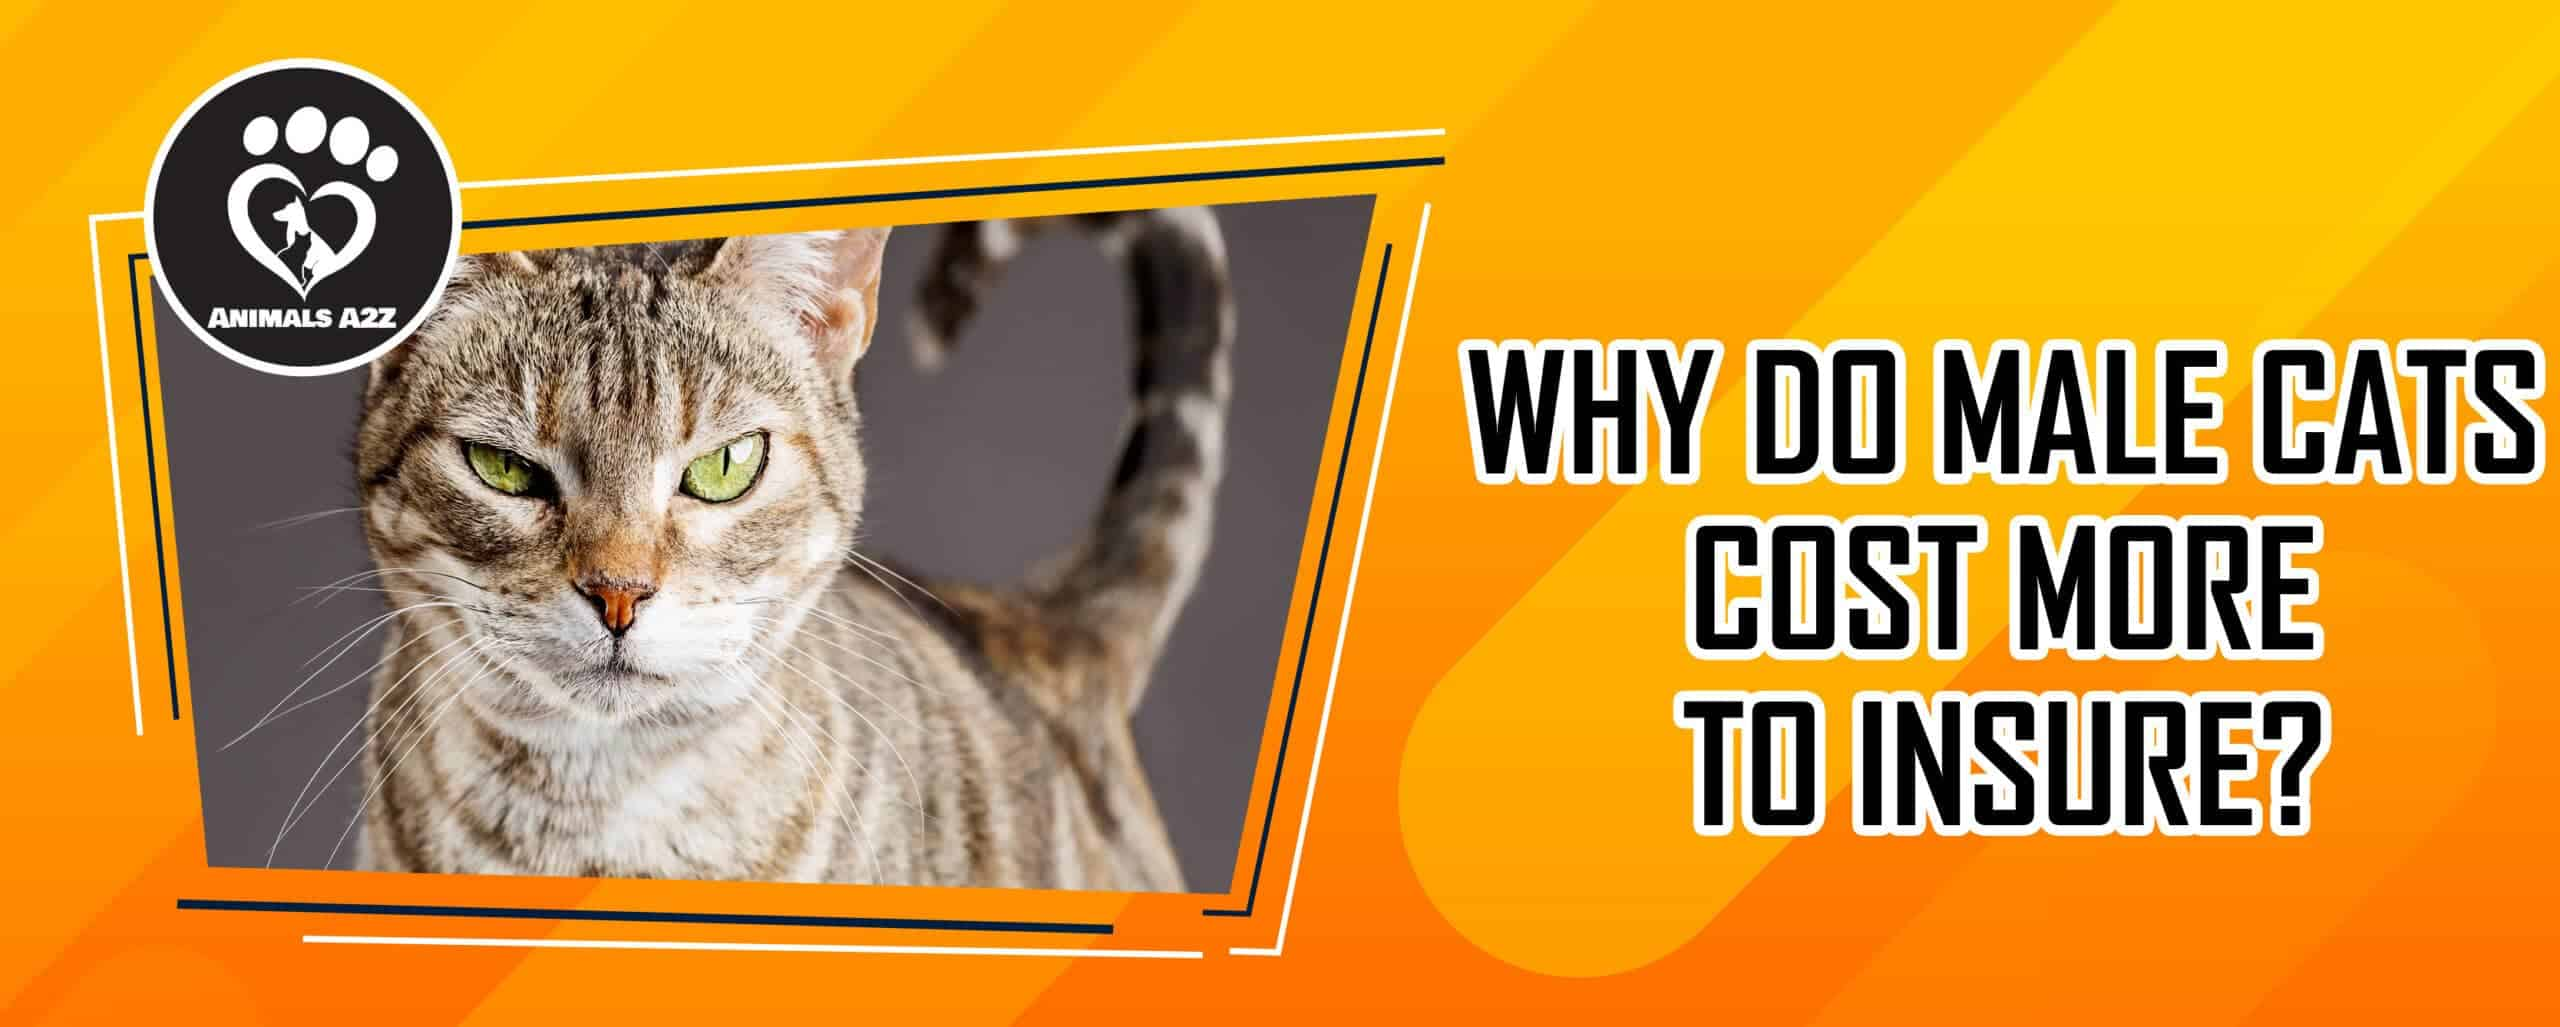 Why do male cats cost more to insure?